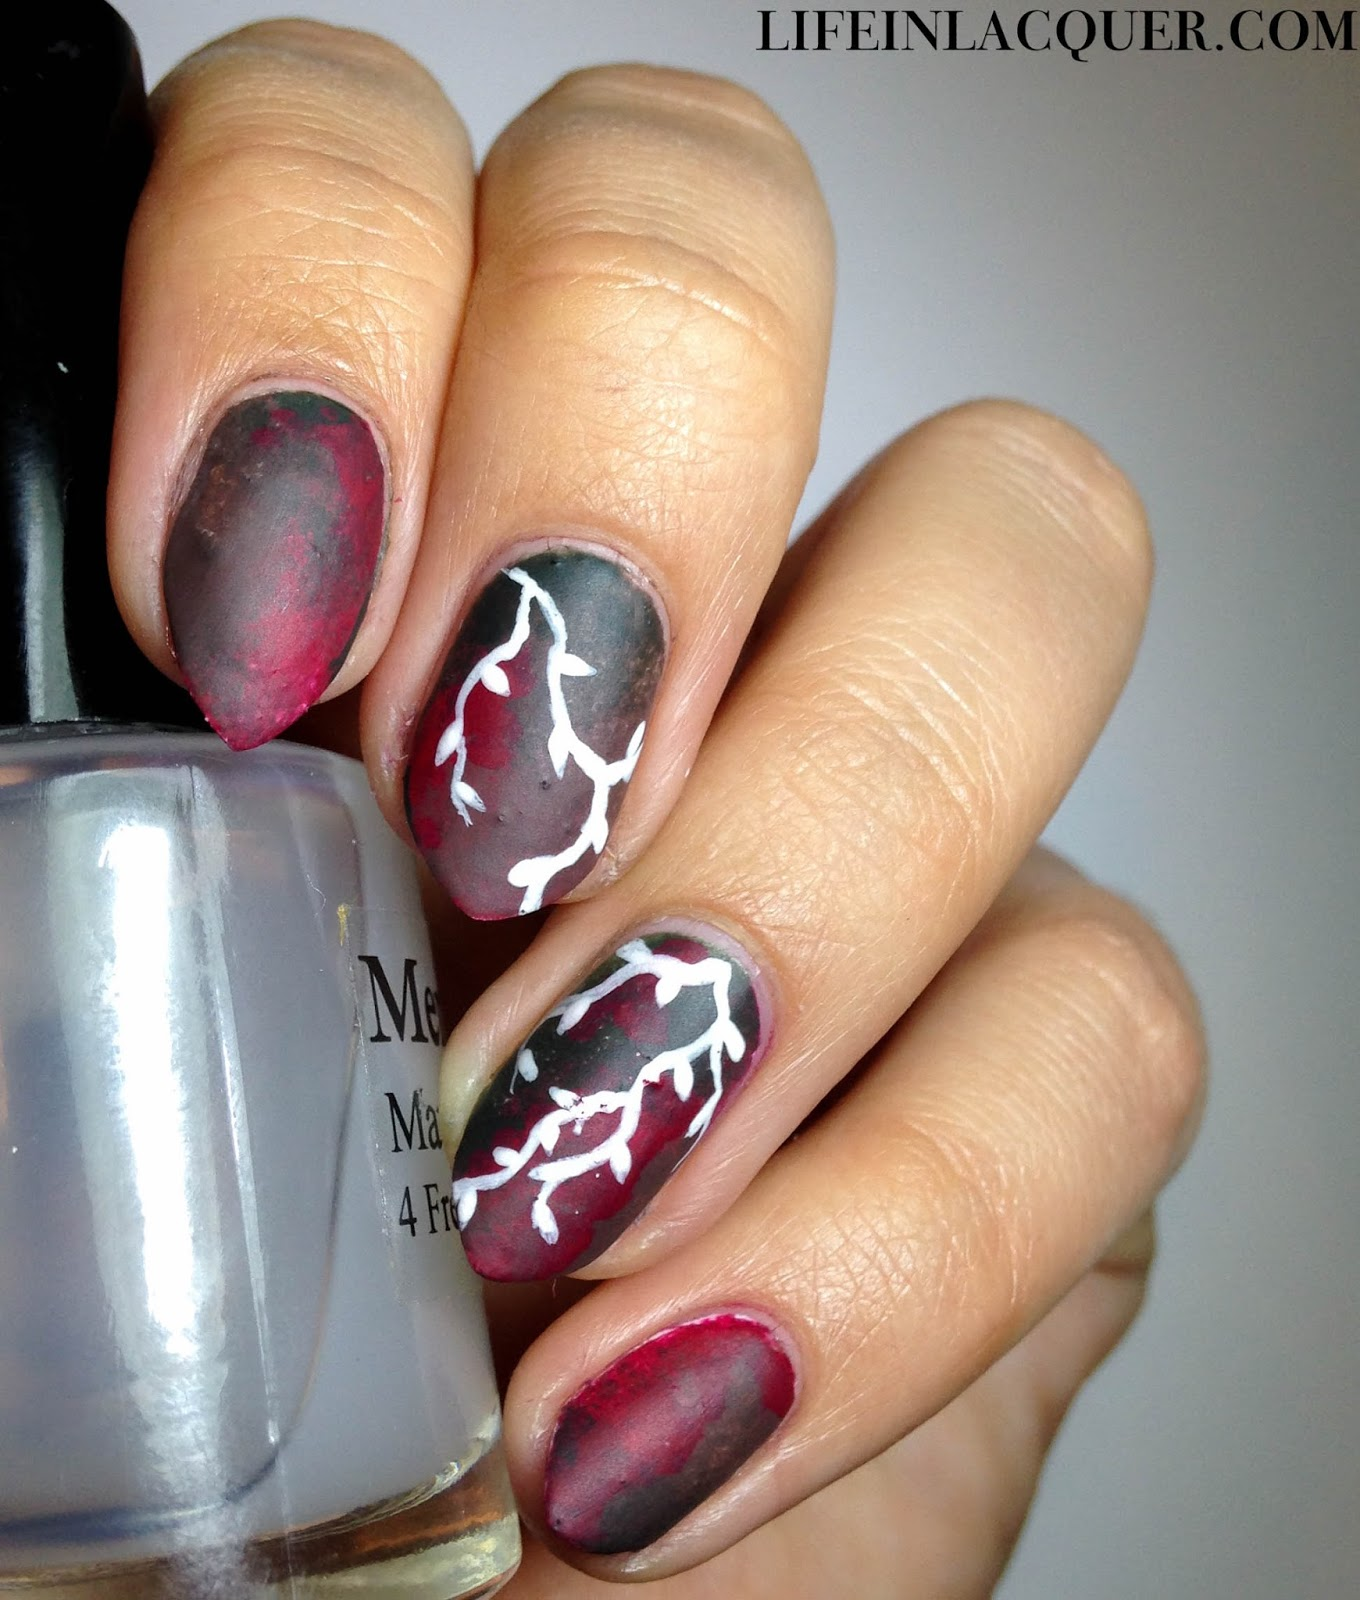 Autumn vine nail art using China Glaze Foie Gras